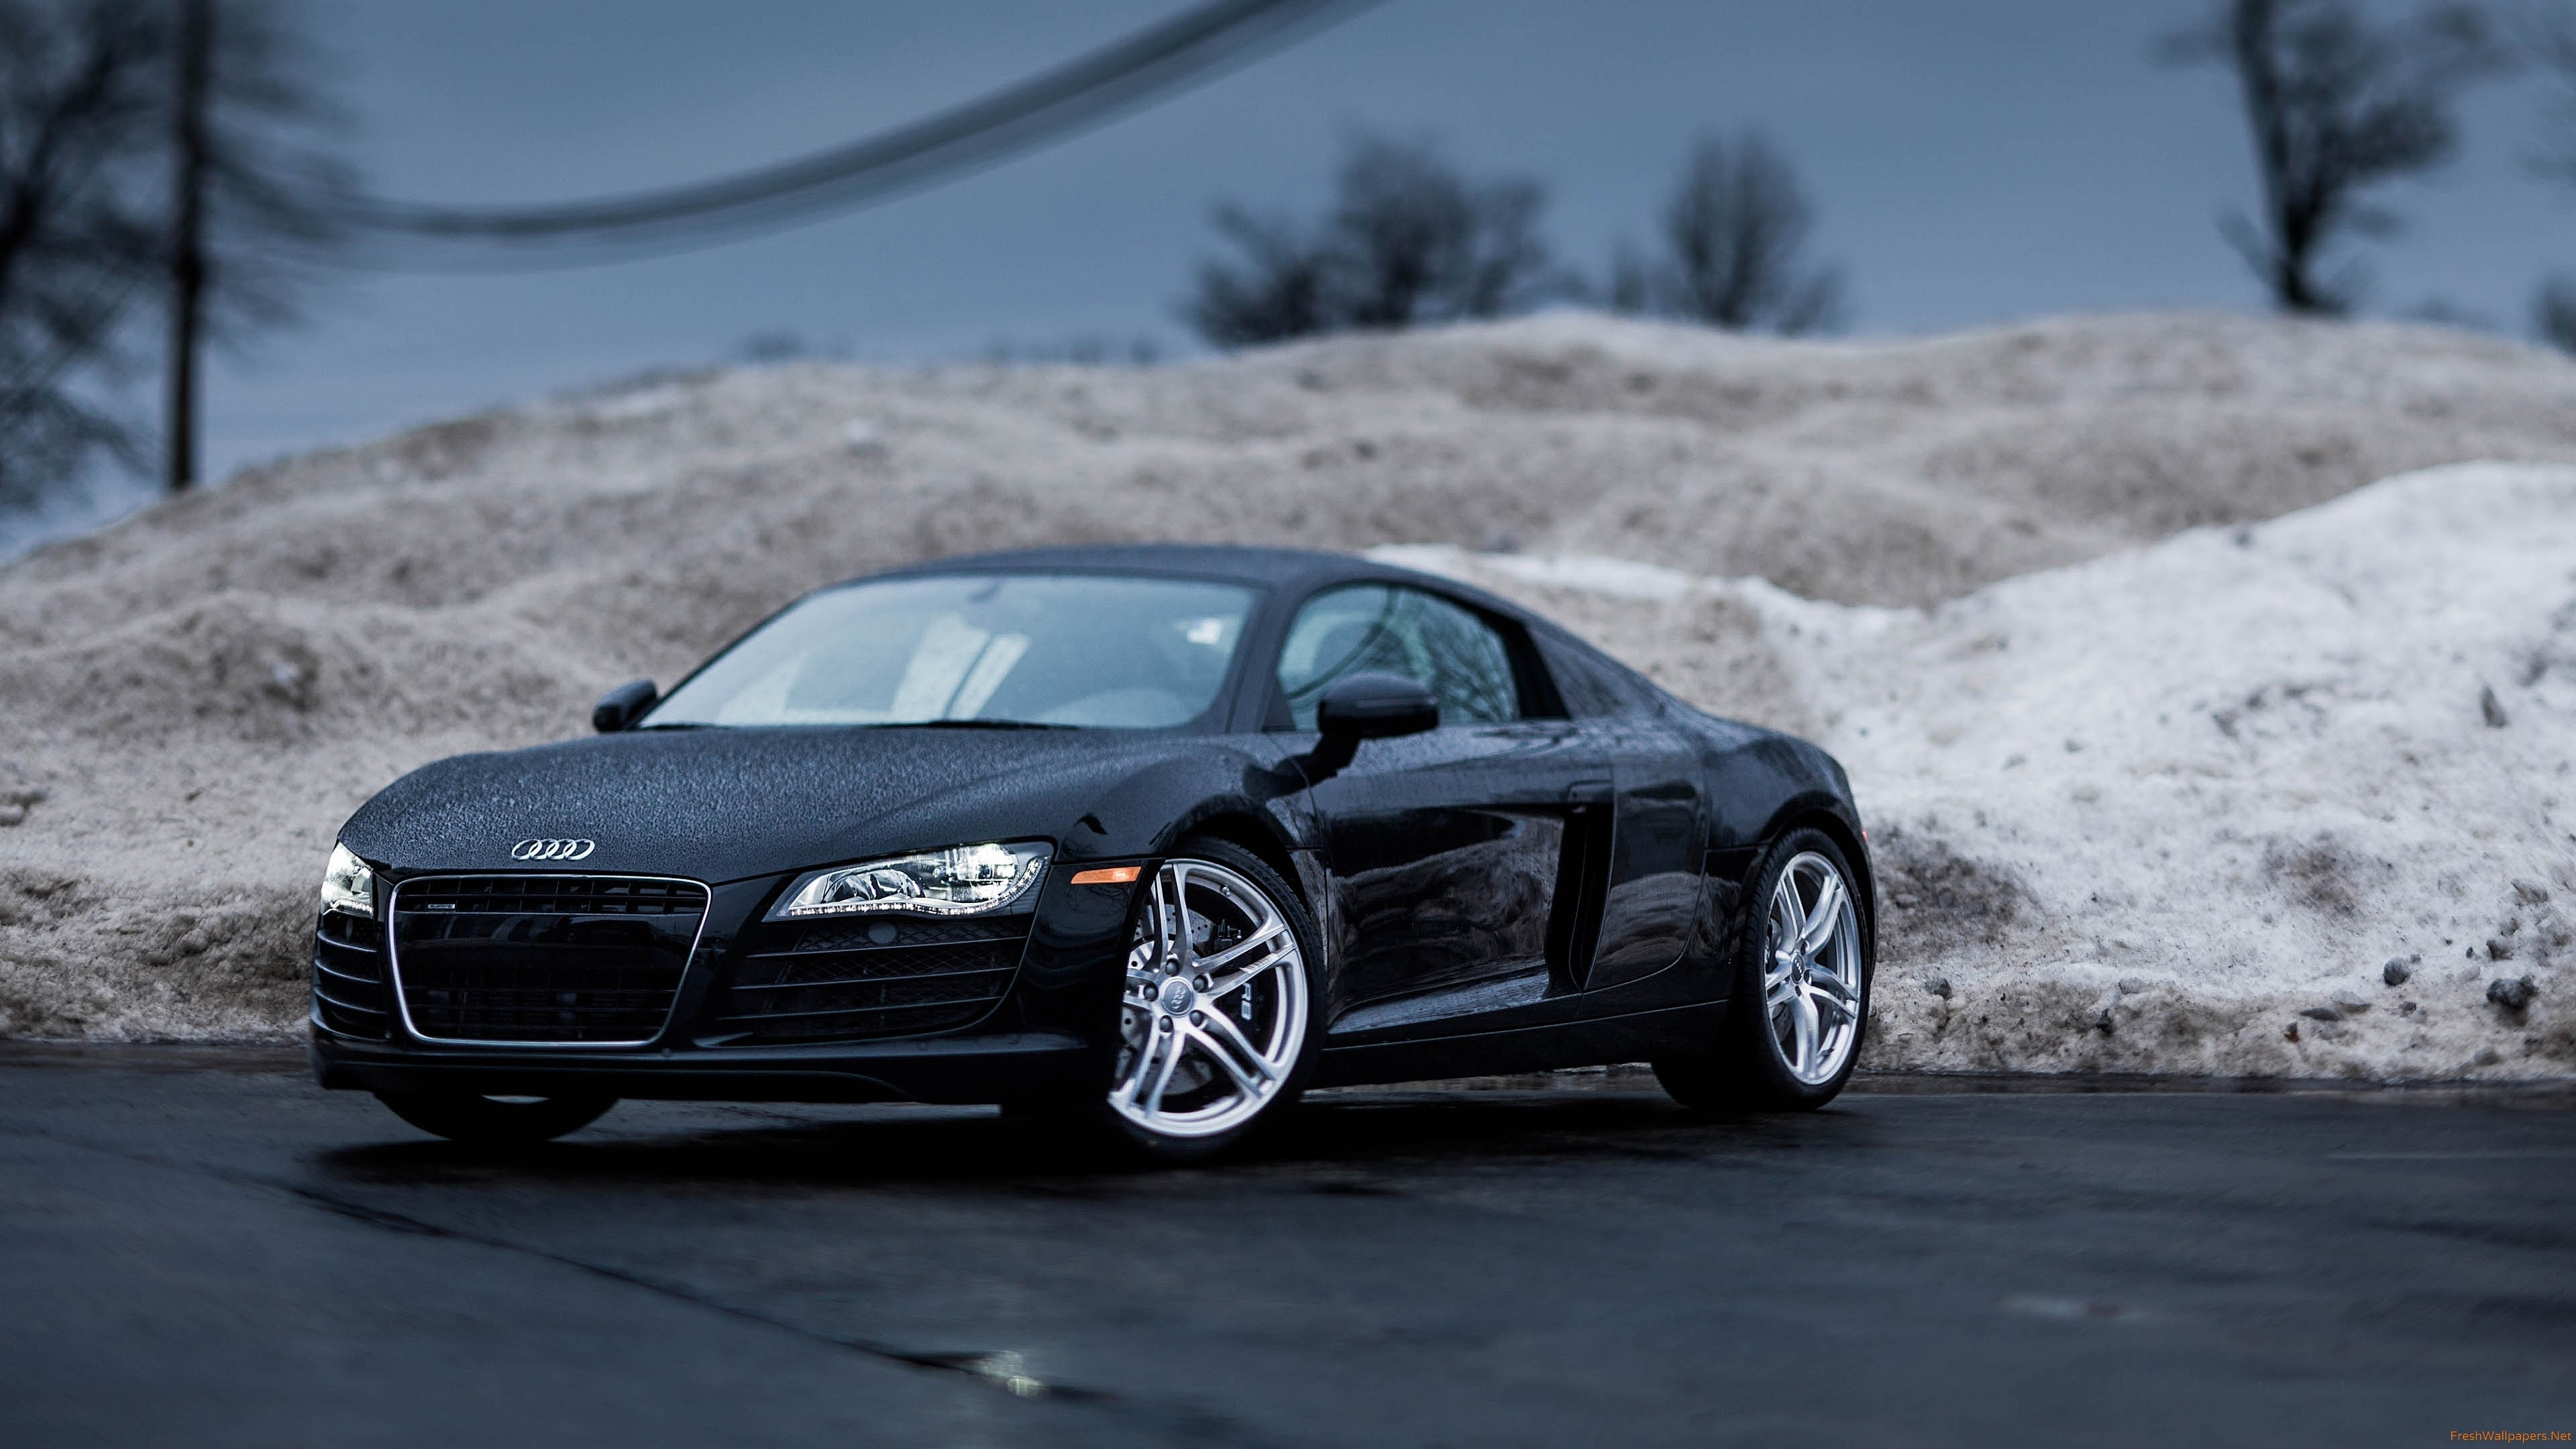 audi r8 black wallpapers | freshwallpapers